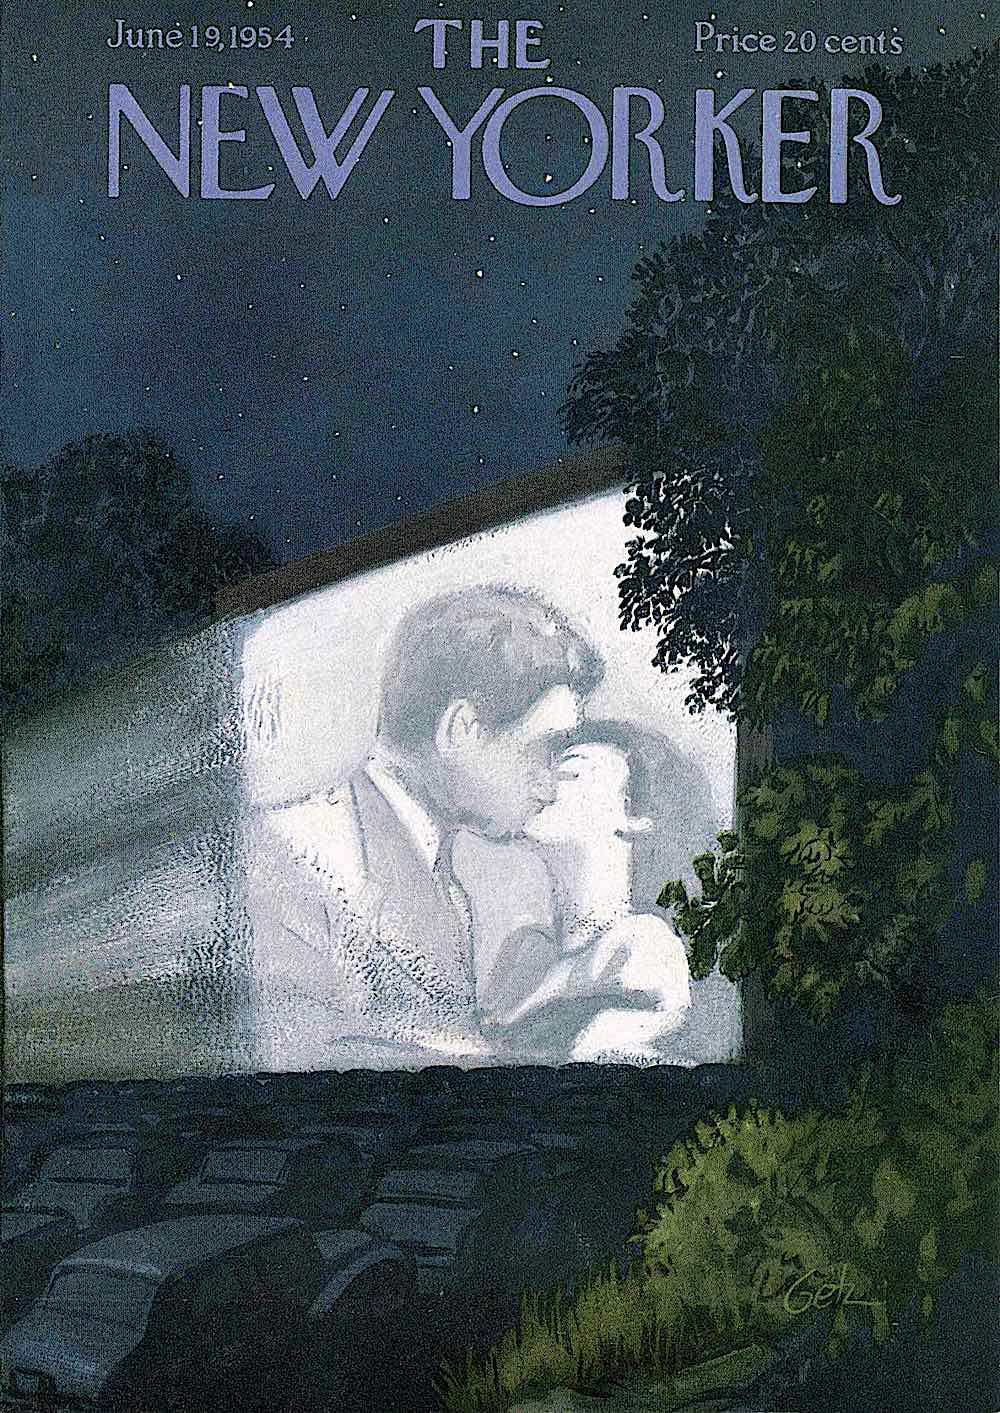 an Arthur Getz illustration for the New Yorker Magazine June 19 1954, the drive-in theater at night